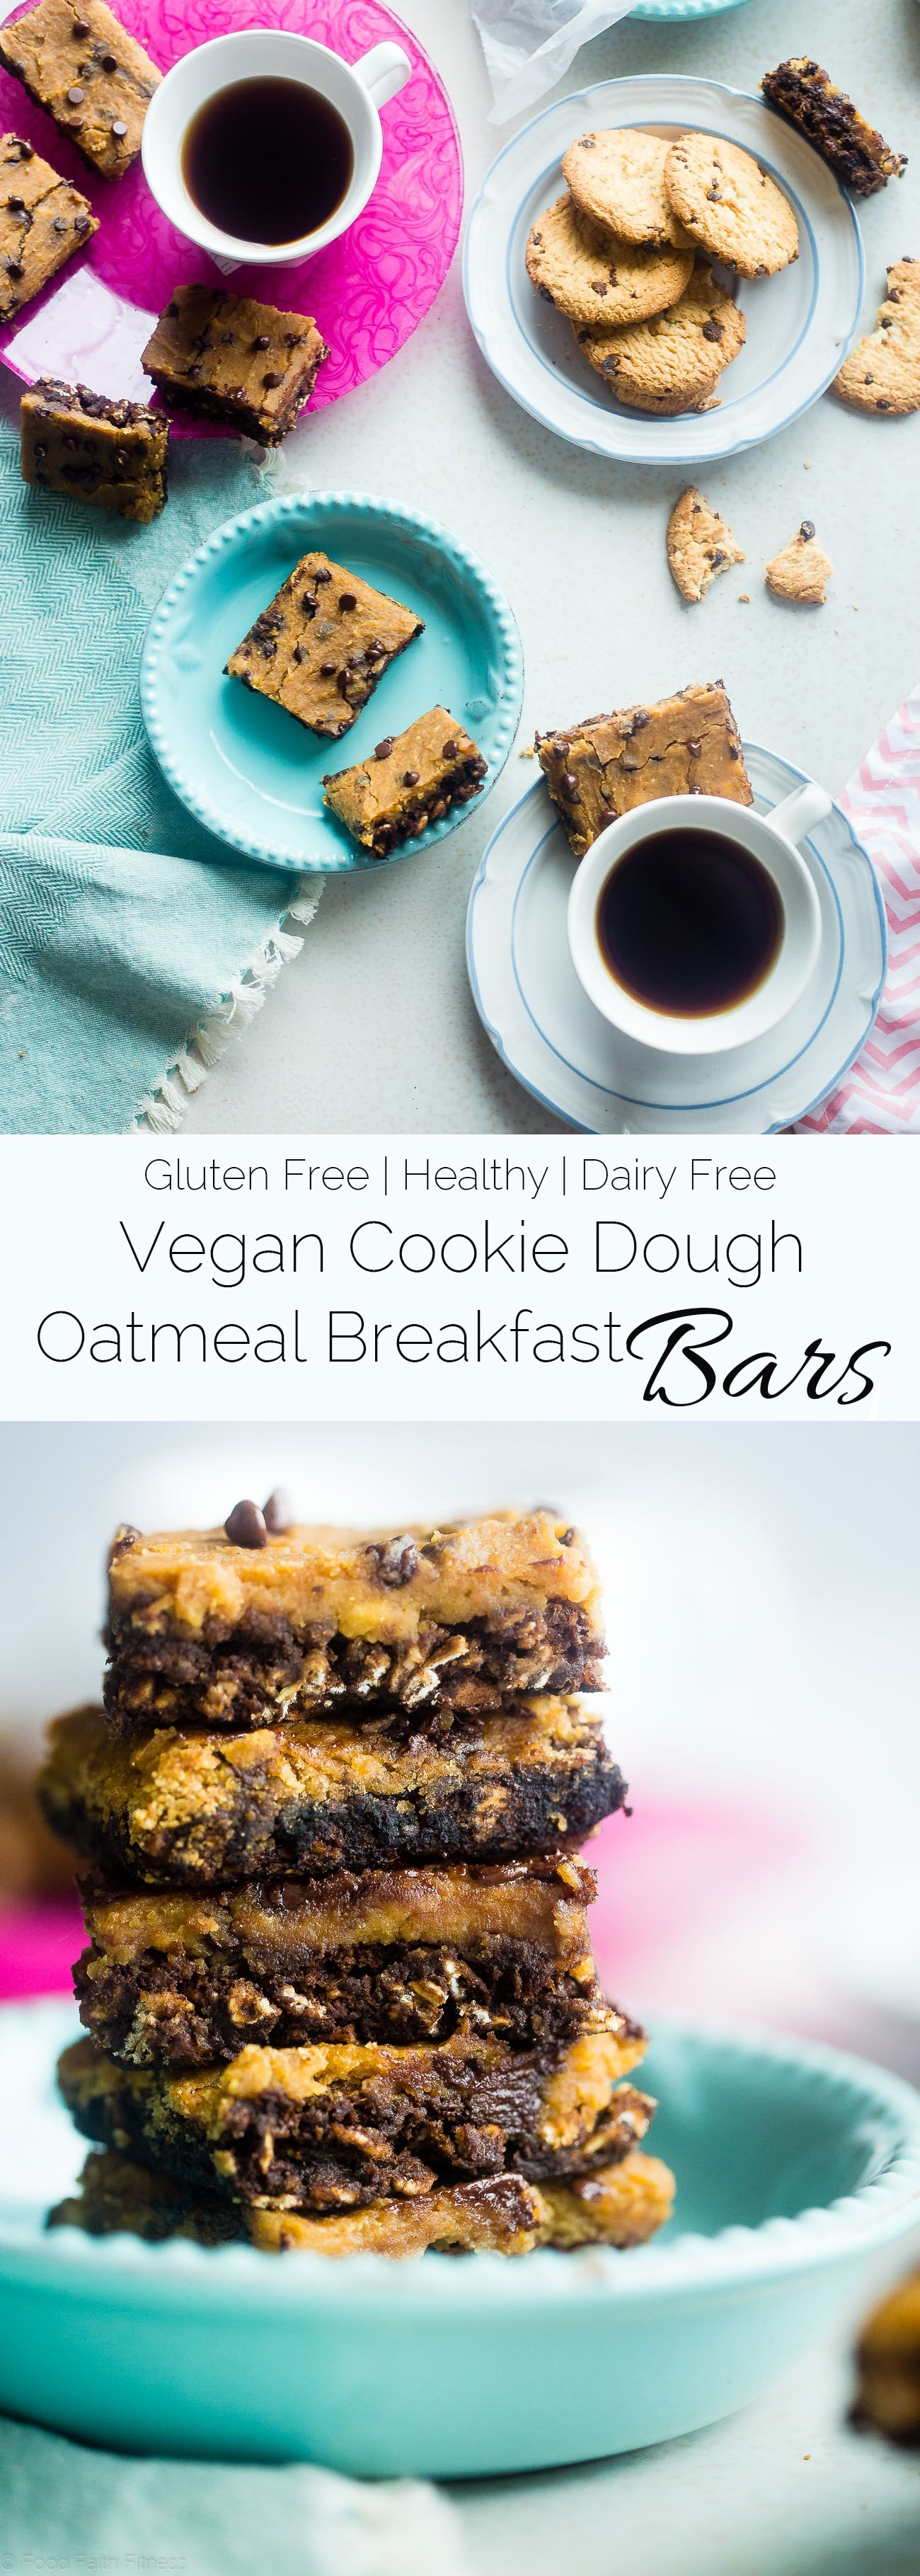 These Vegan Cookie Dough Oatmeal Breakfast Bars are perfect for an healthy grab and go breakfast. Plus they taste like cookie dough! Packed with real food plant based protein, chocolate chips, and gluten free oats. A healthy breakfast that tastes like dessert! YUM! www.cottercrunch.